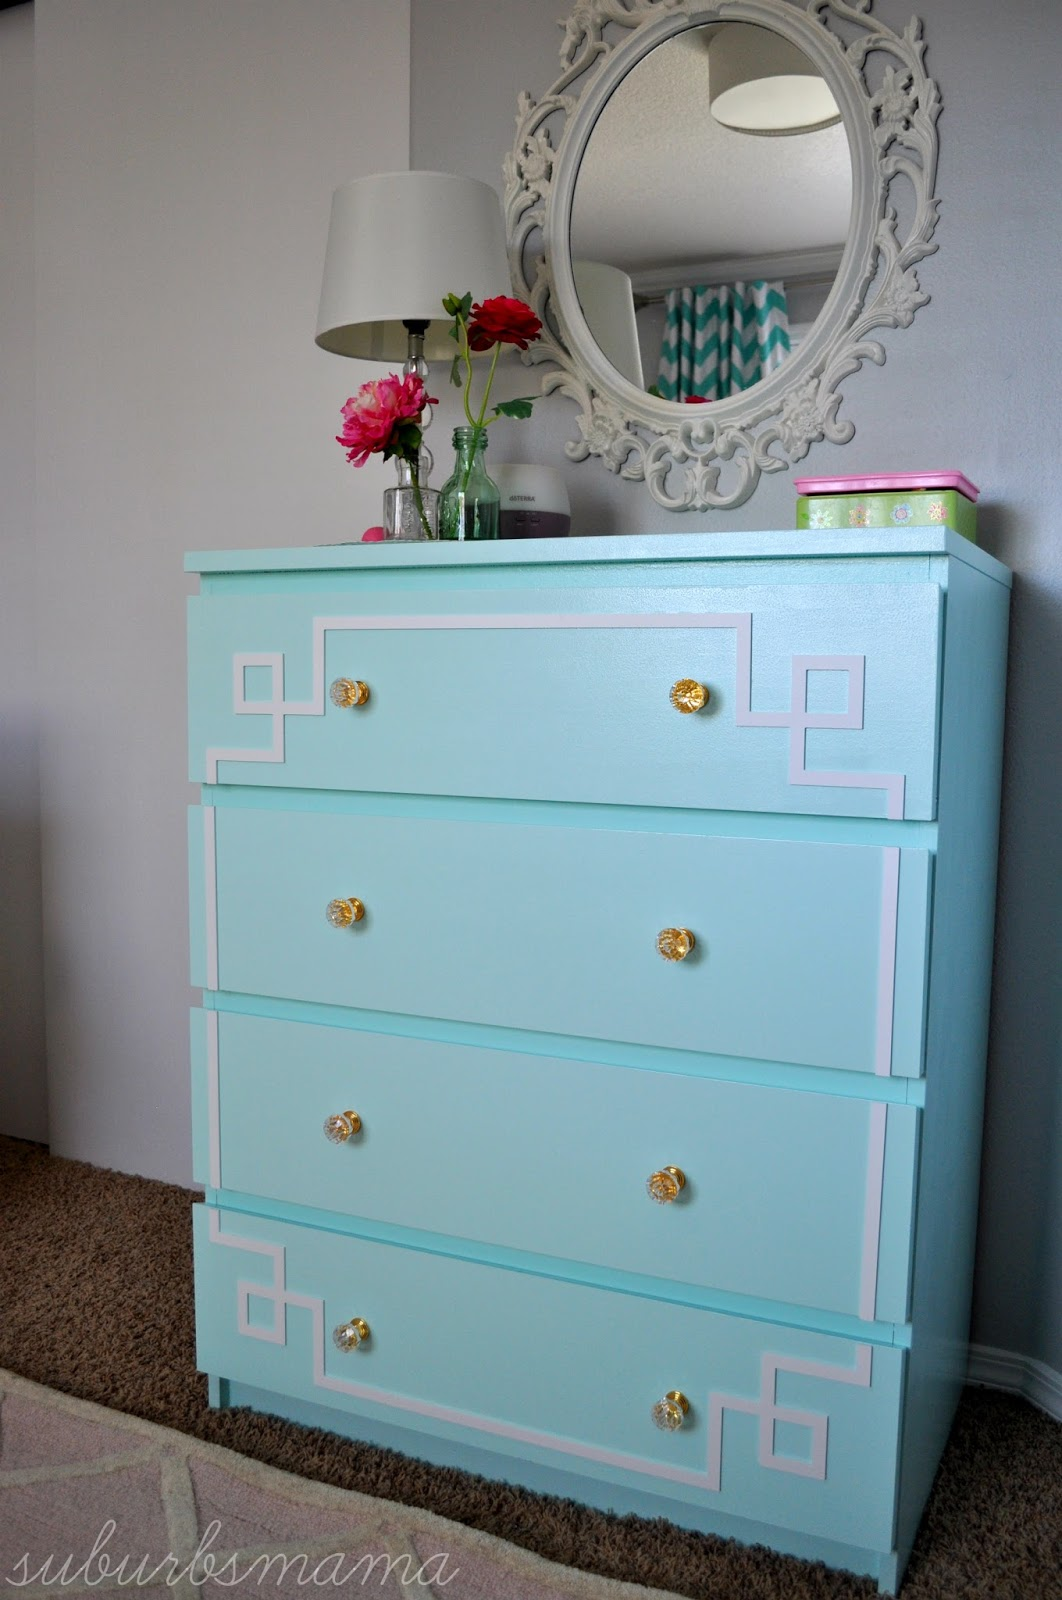 Suburbs mama ikea malm dresser hack before and after for Malm hack